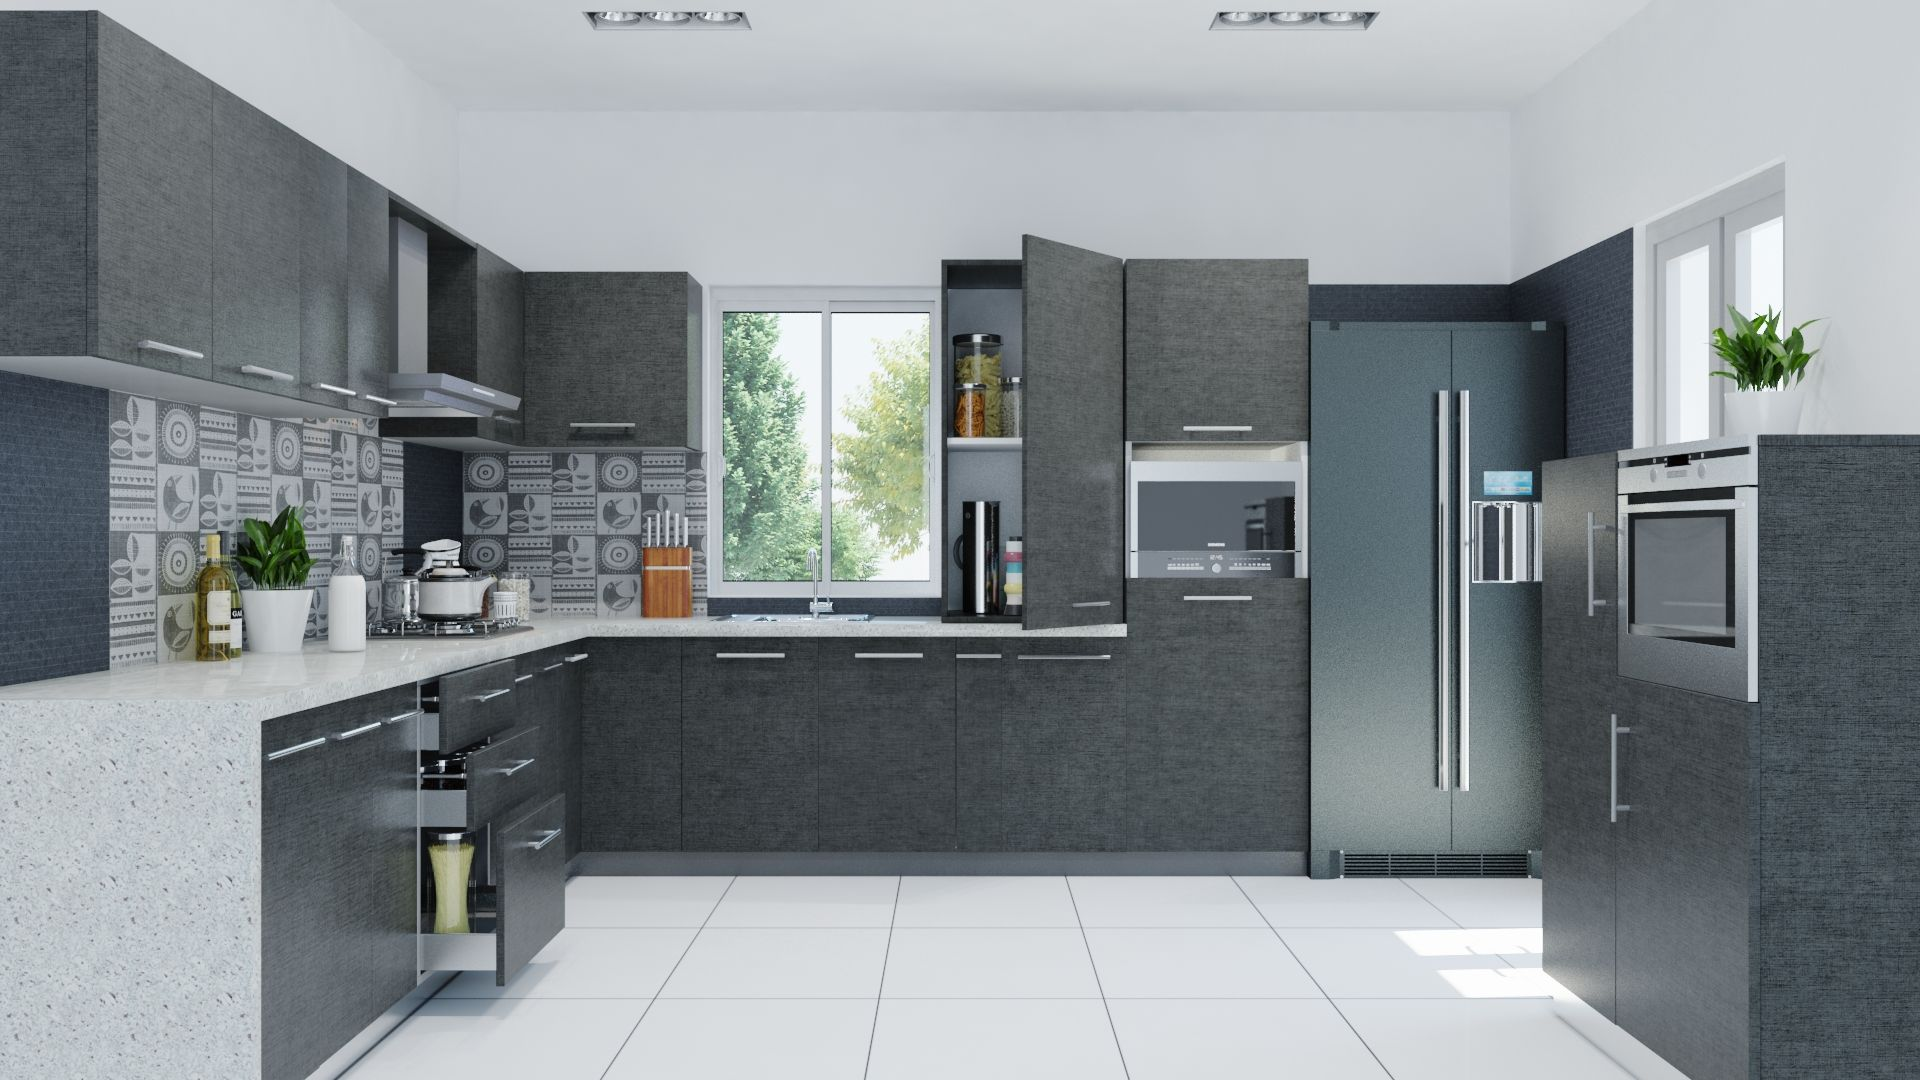 Kitchen grey modern kitchen cabinet white ceramic tile floor modern refrigerator accent Modern kitchen tiles design pictures